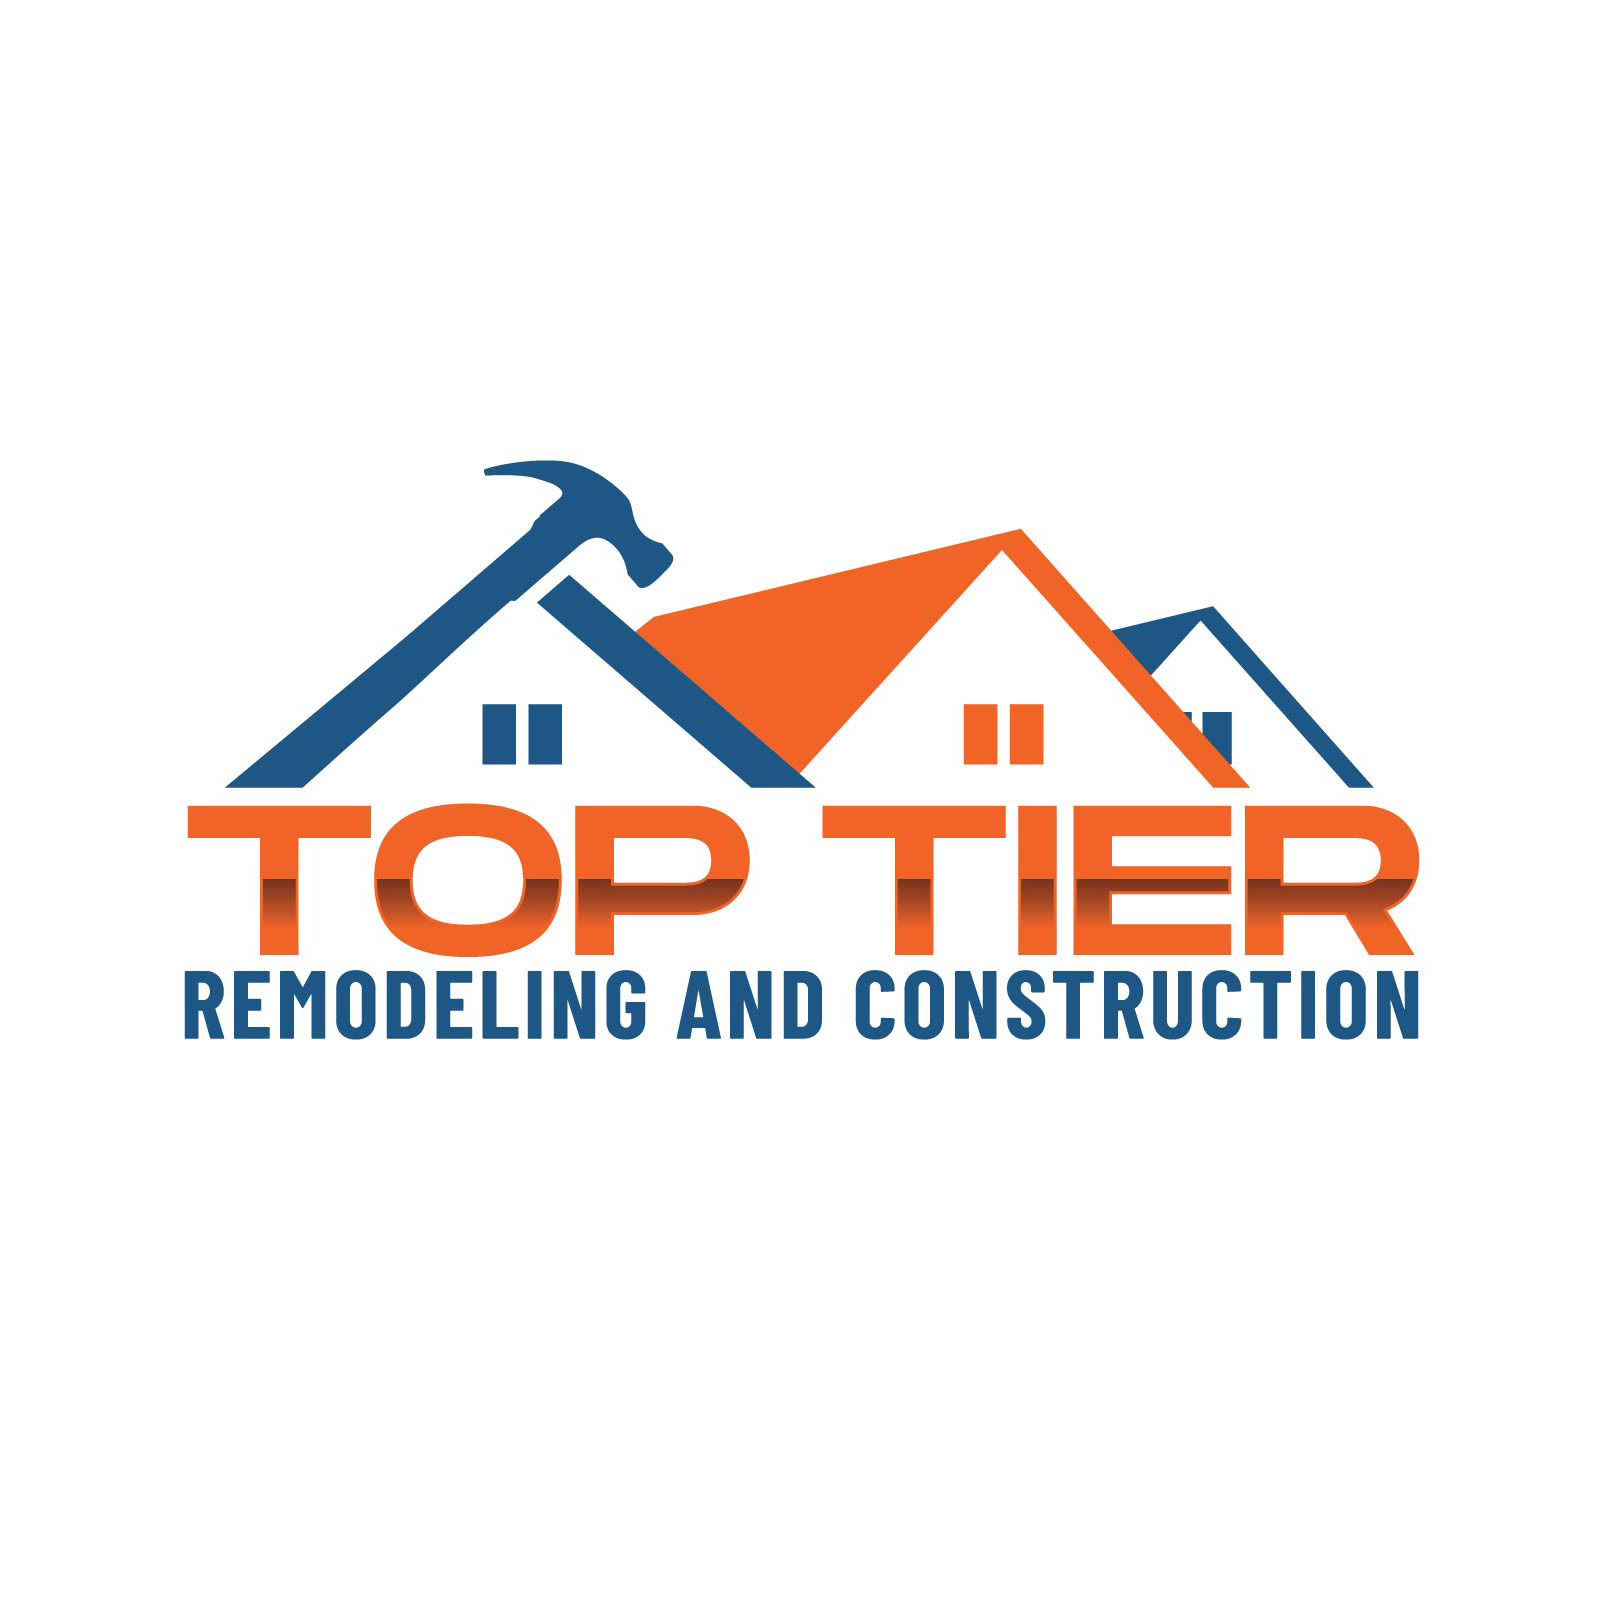 Top Tier Remodeling and Construction 15 final